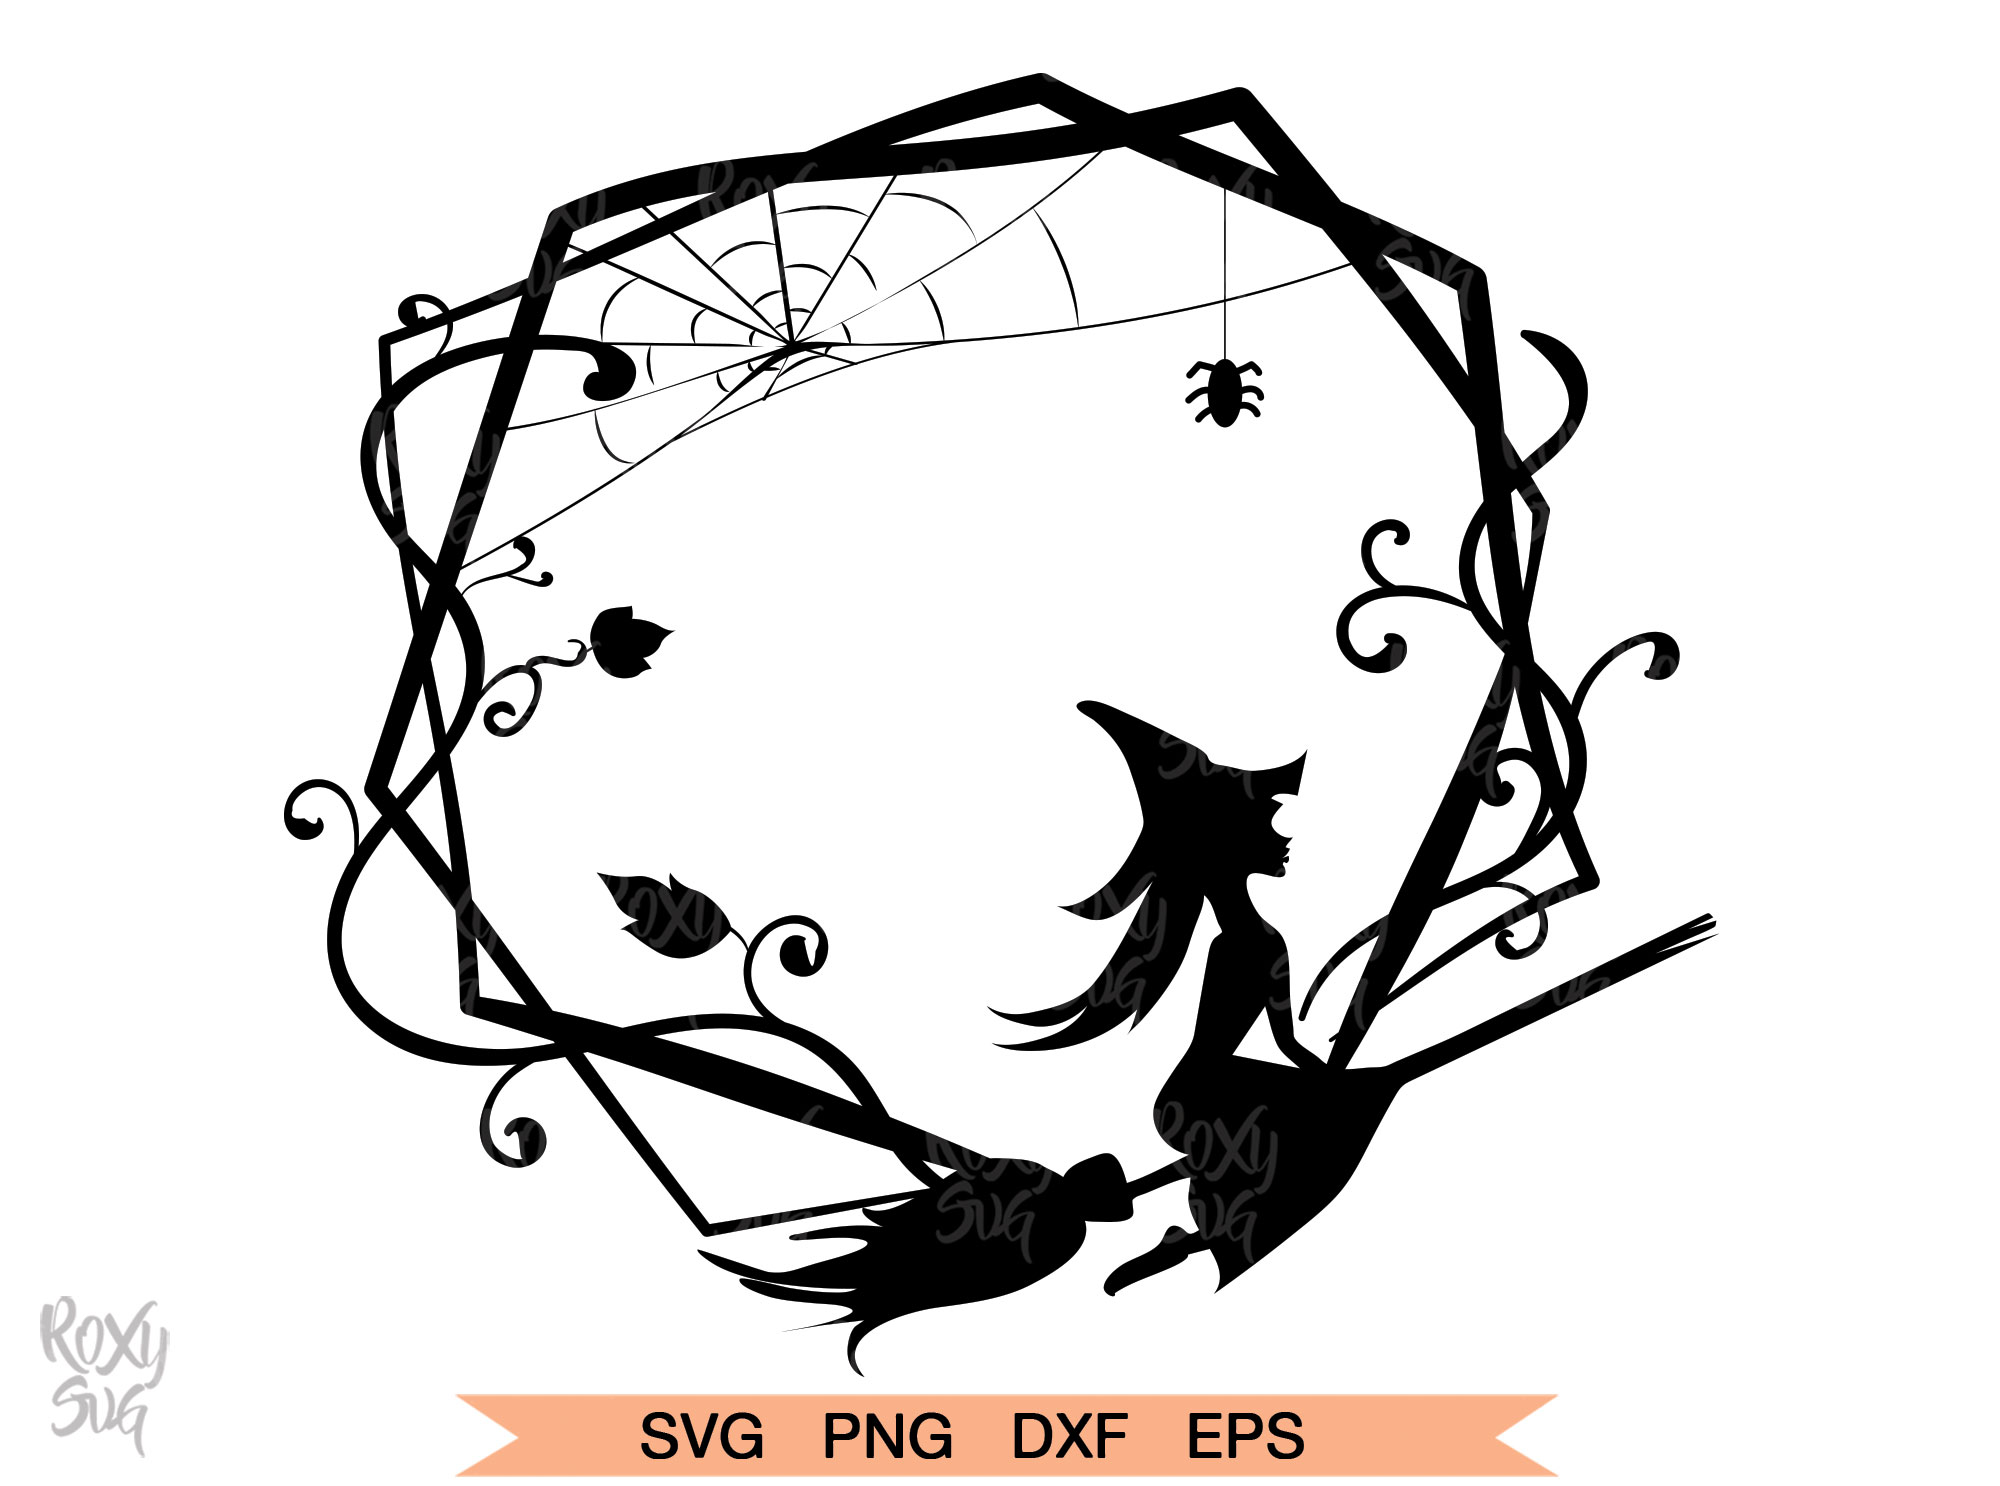 Download Free Halloween Witch Svg Graphic By Roxysvg26 Creative Fabrica for Cricut Explore, Silhouette and other cutting machines.